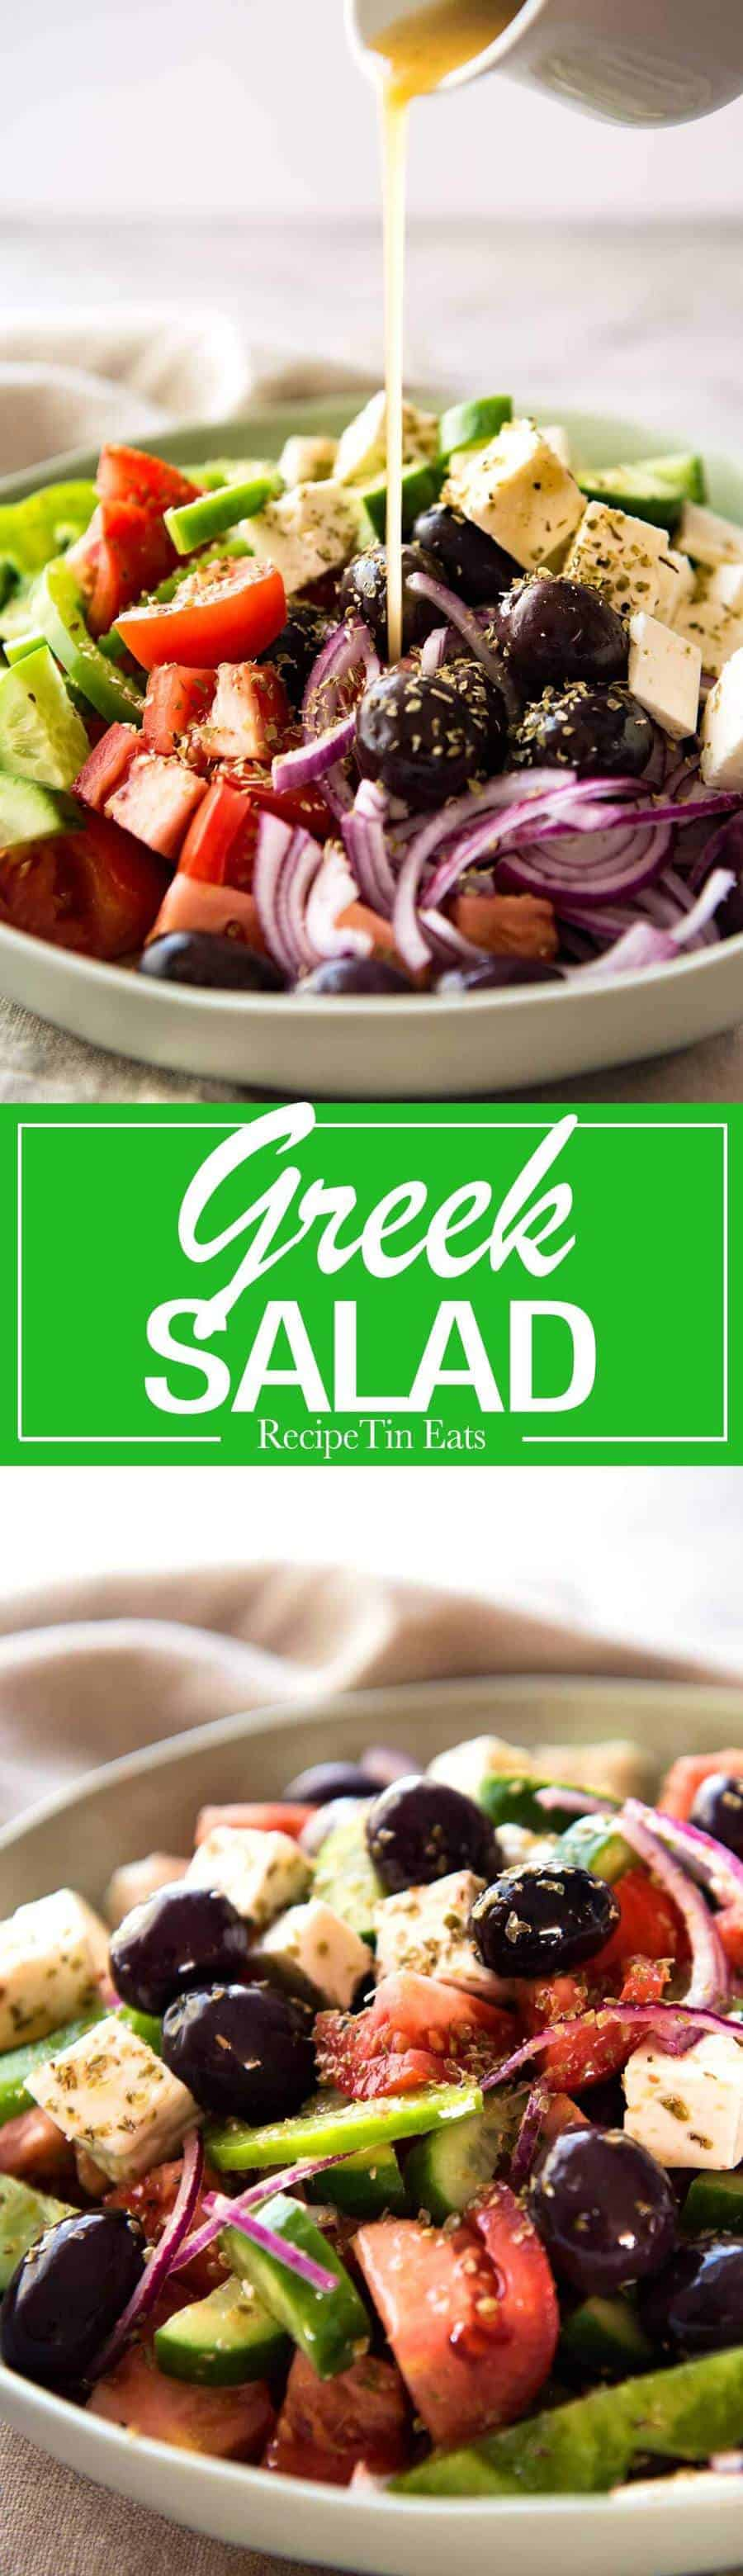 A classic Greek Salad with plump olives and a beautiful homemade Greek Salad Dressing. www.recipetineats.com